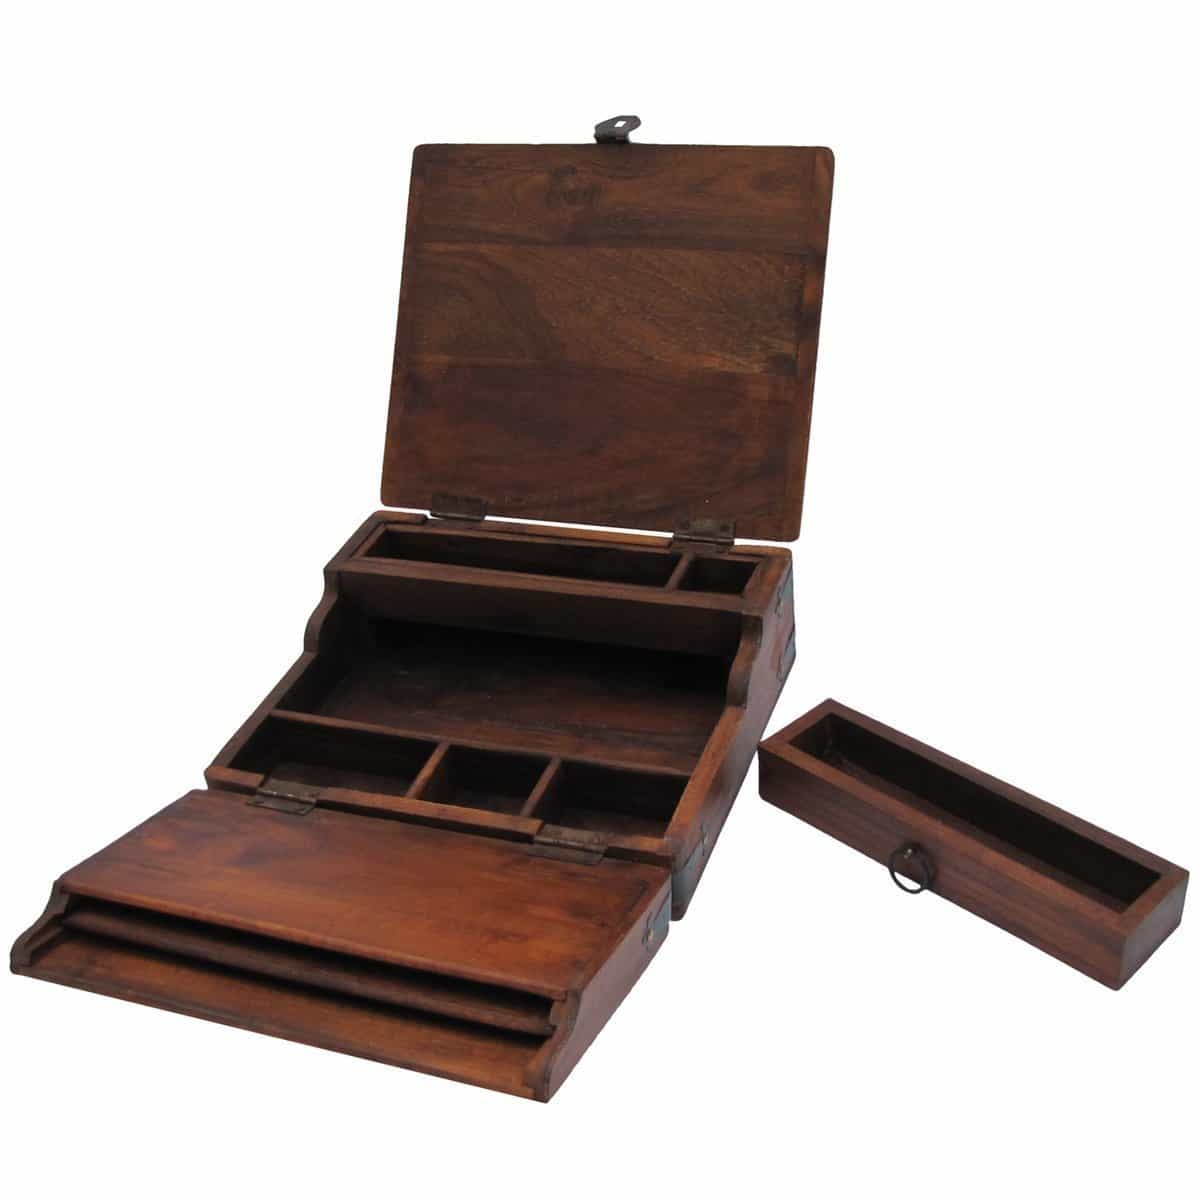 Quest continues for the perfect Antique Style Writing Lap Desk for Letter Writing